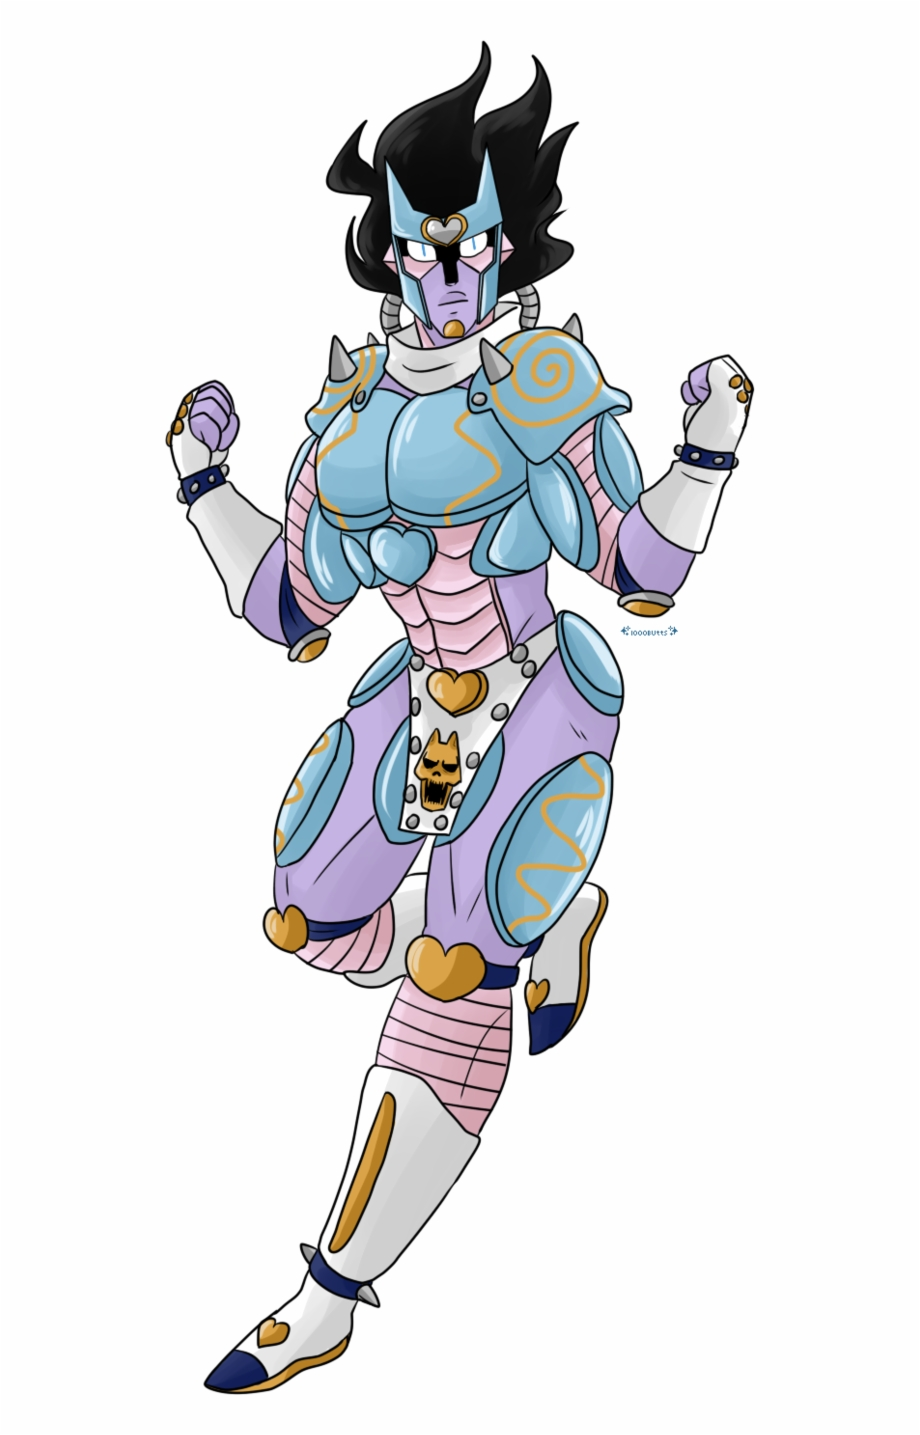 Crazy Crazy Diamond Killer Queen Transparent Png Download 2588418 Vippng Vol.07 ch.067 special attack jojo crackers! crazy crazy diamond killer queen